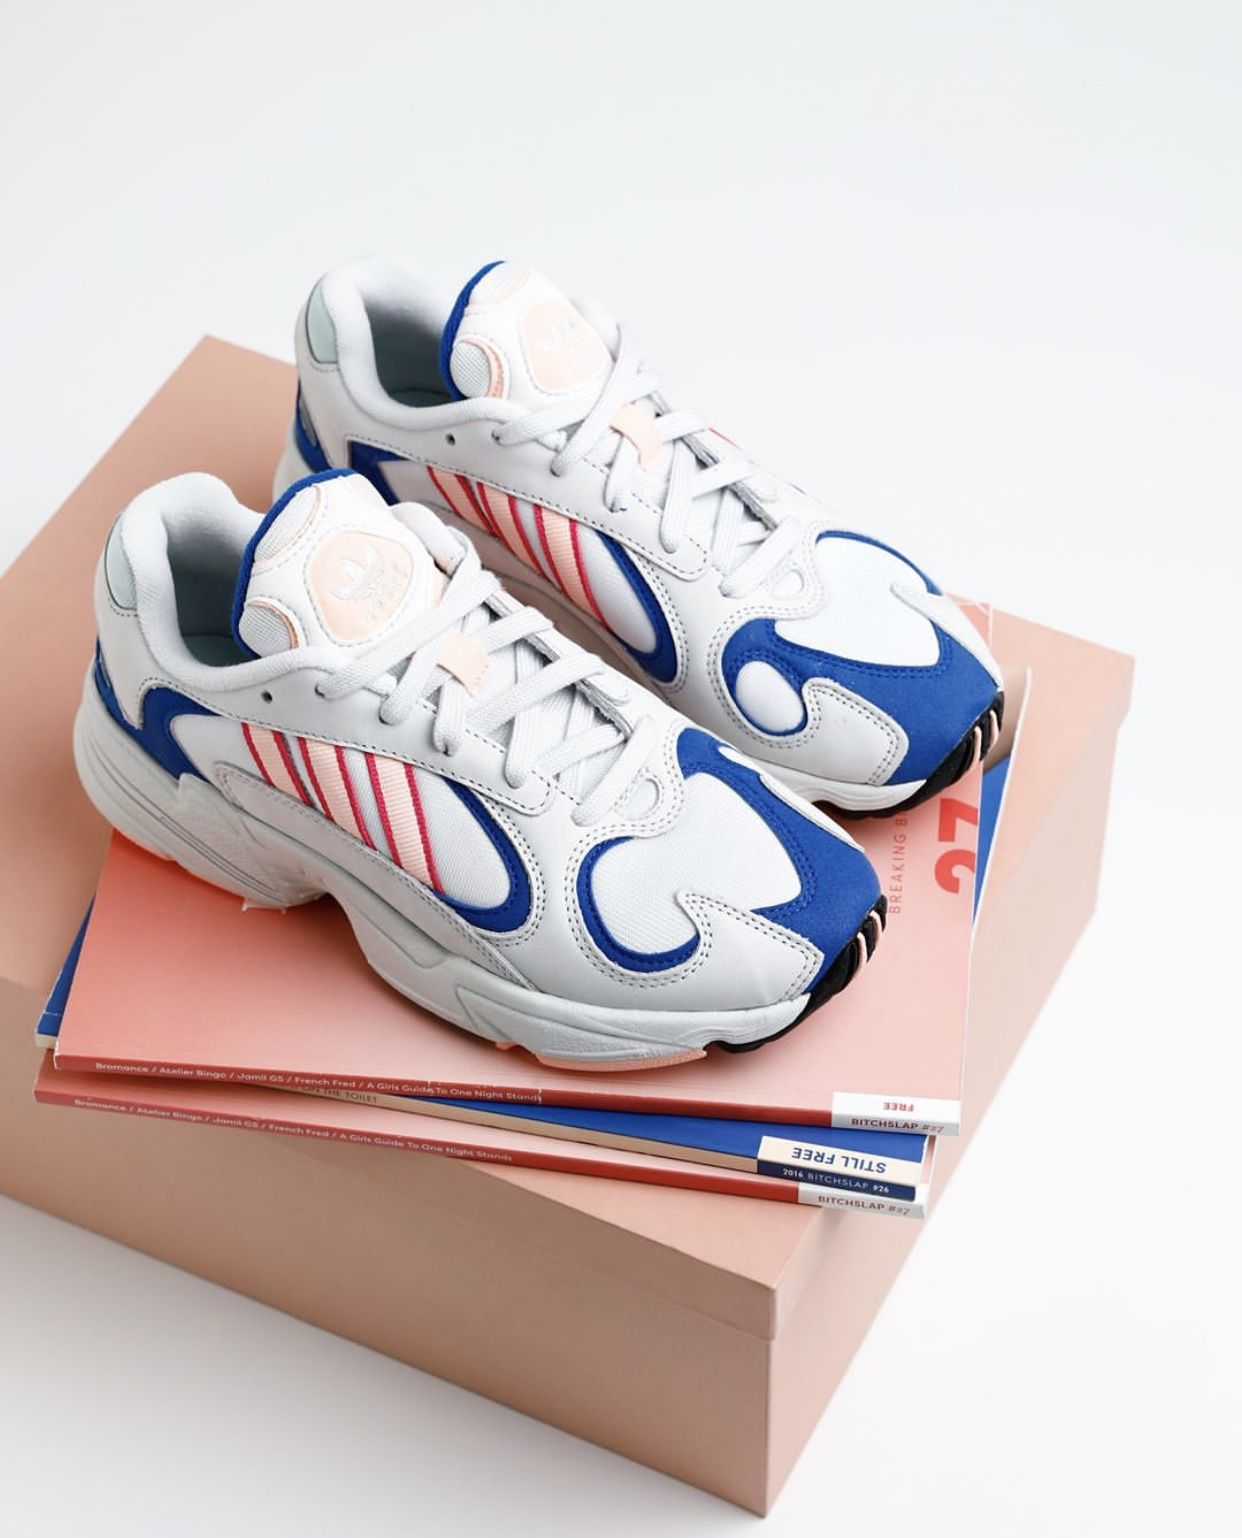 f050cef4296 adidas Yung 1 Shoes in 2019 | CURRENT | Nike shoes blue, Shoes, Nike ...